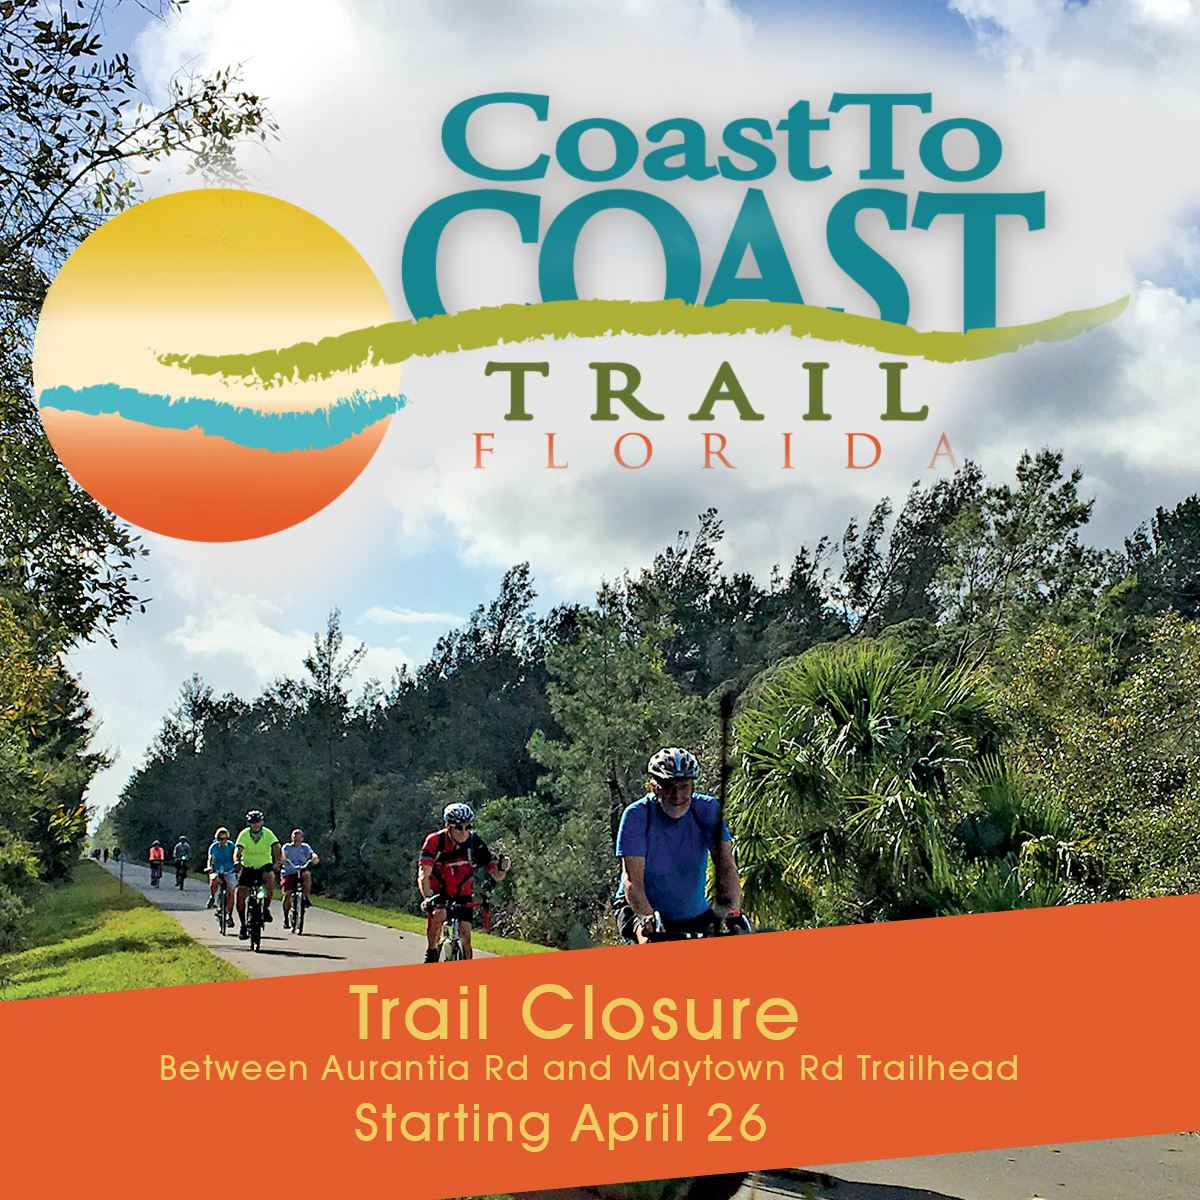 Coast to Coast Trail Closure Starting April 26th